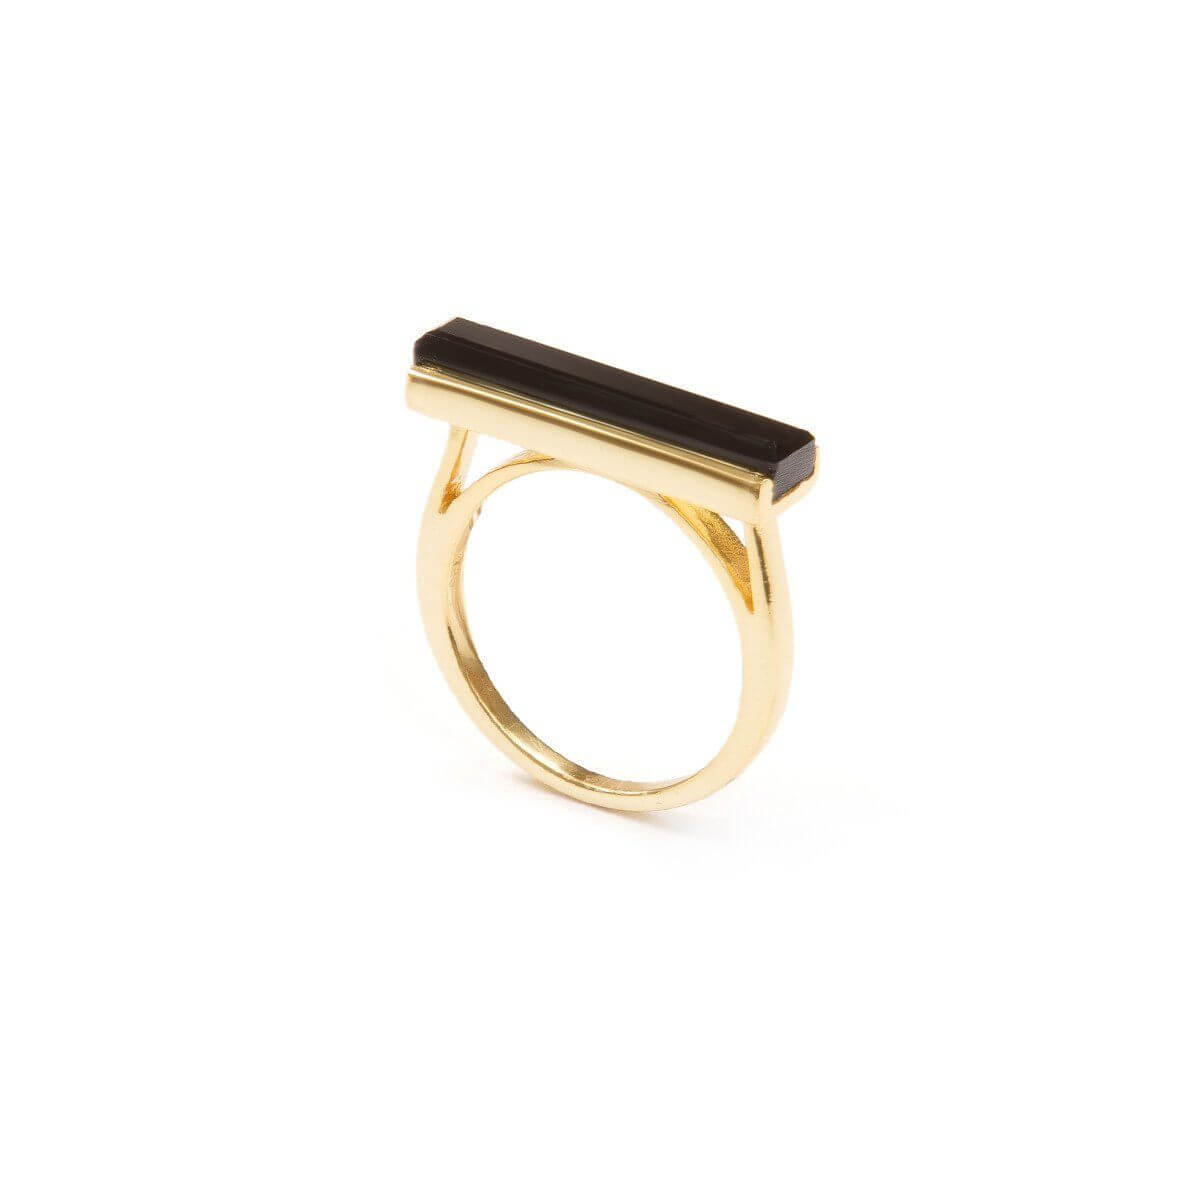 Ring - URBAN RING   Black Onyx